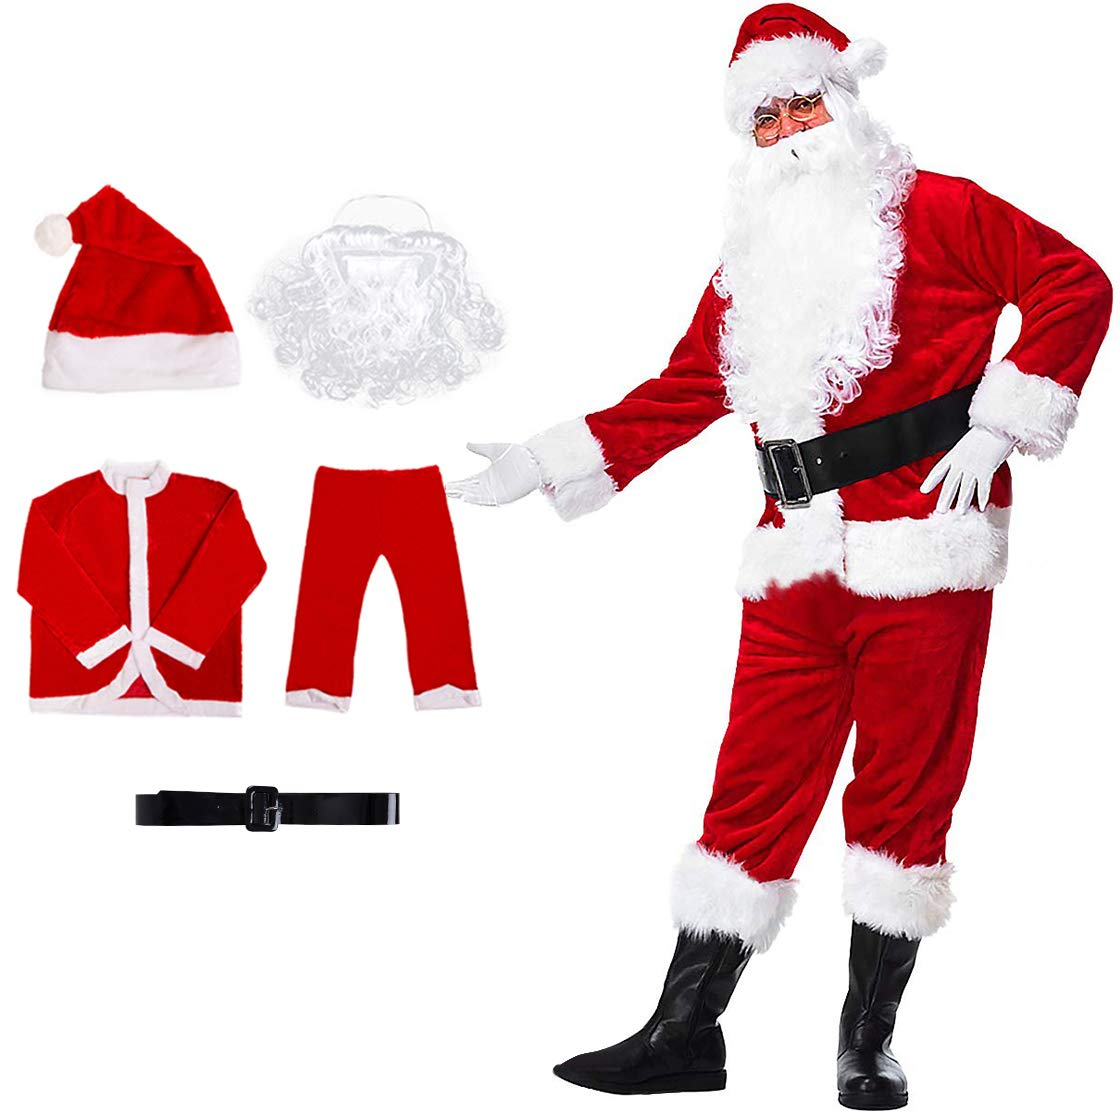 Christmas Claus Costume Velvet Deluxe Santa Men's Set Suit Red